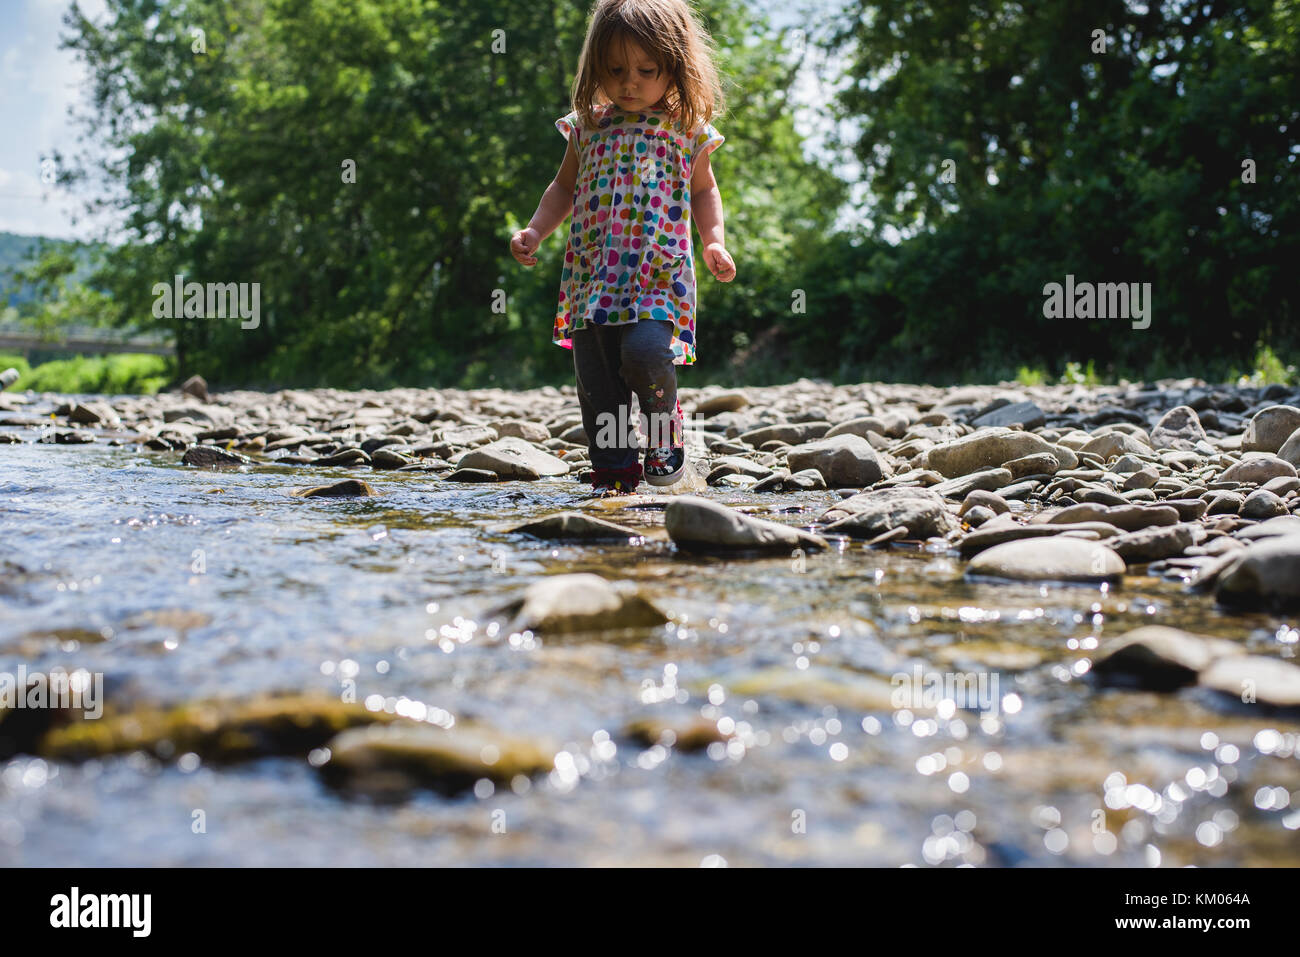 A little girl stands in a stream on a sunny, summer day. - Stock Image